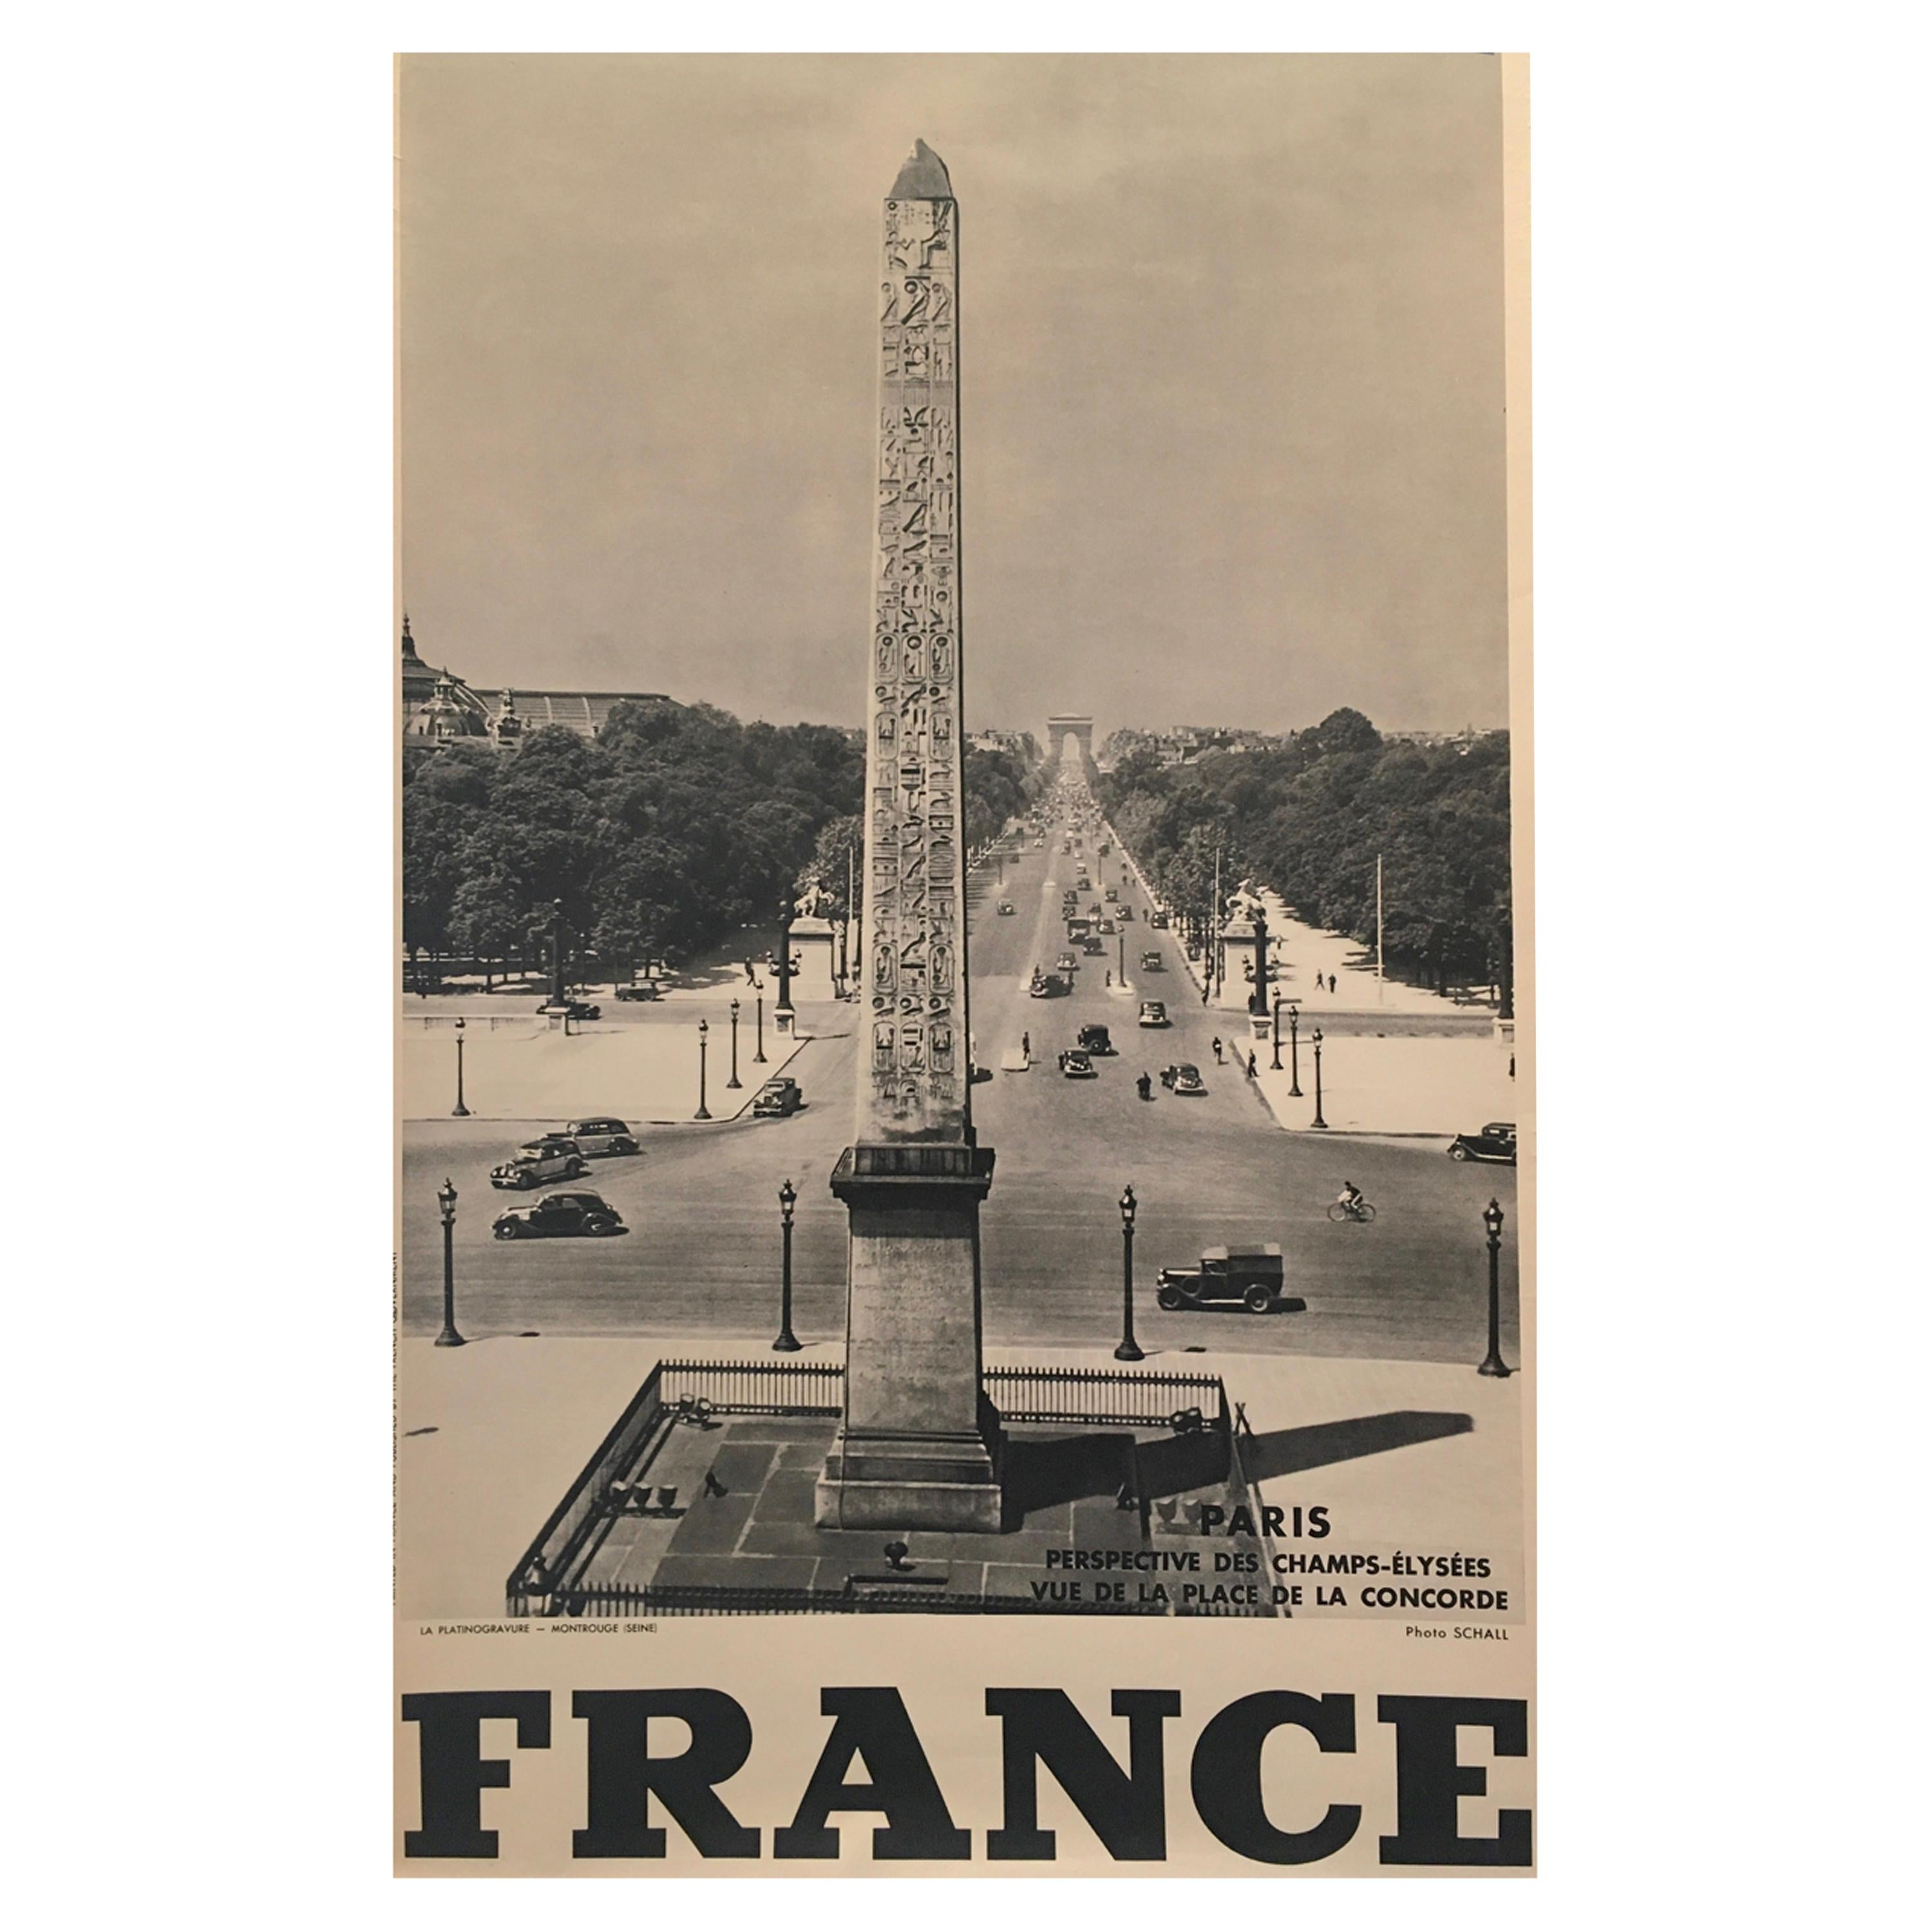 Original Vintage 1950s French Government Tourism Poster 'Champs-Elysees'